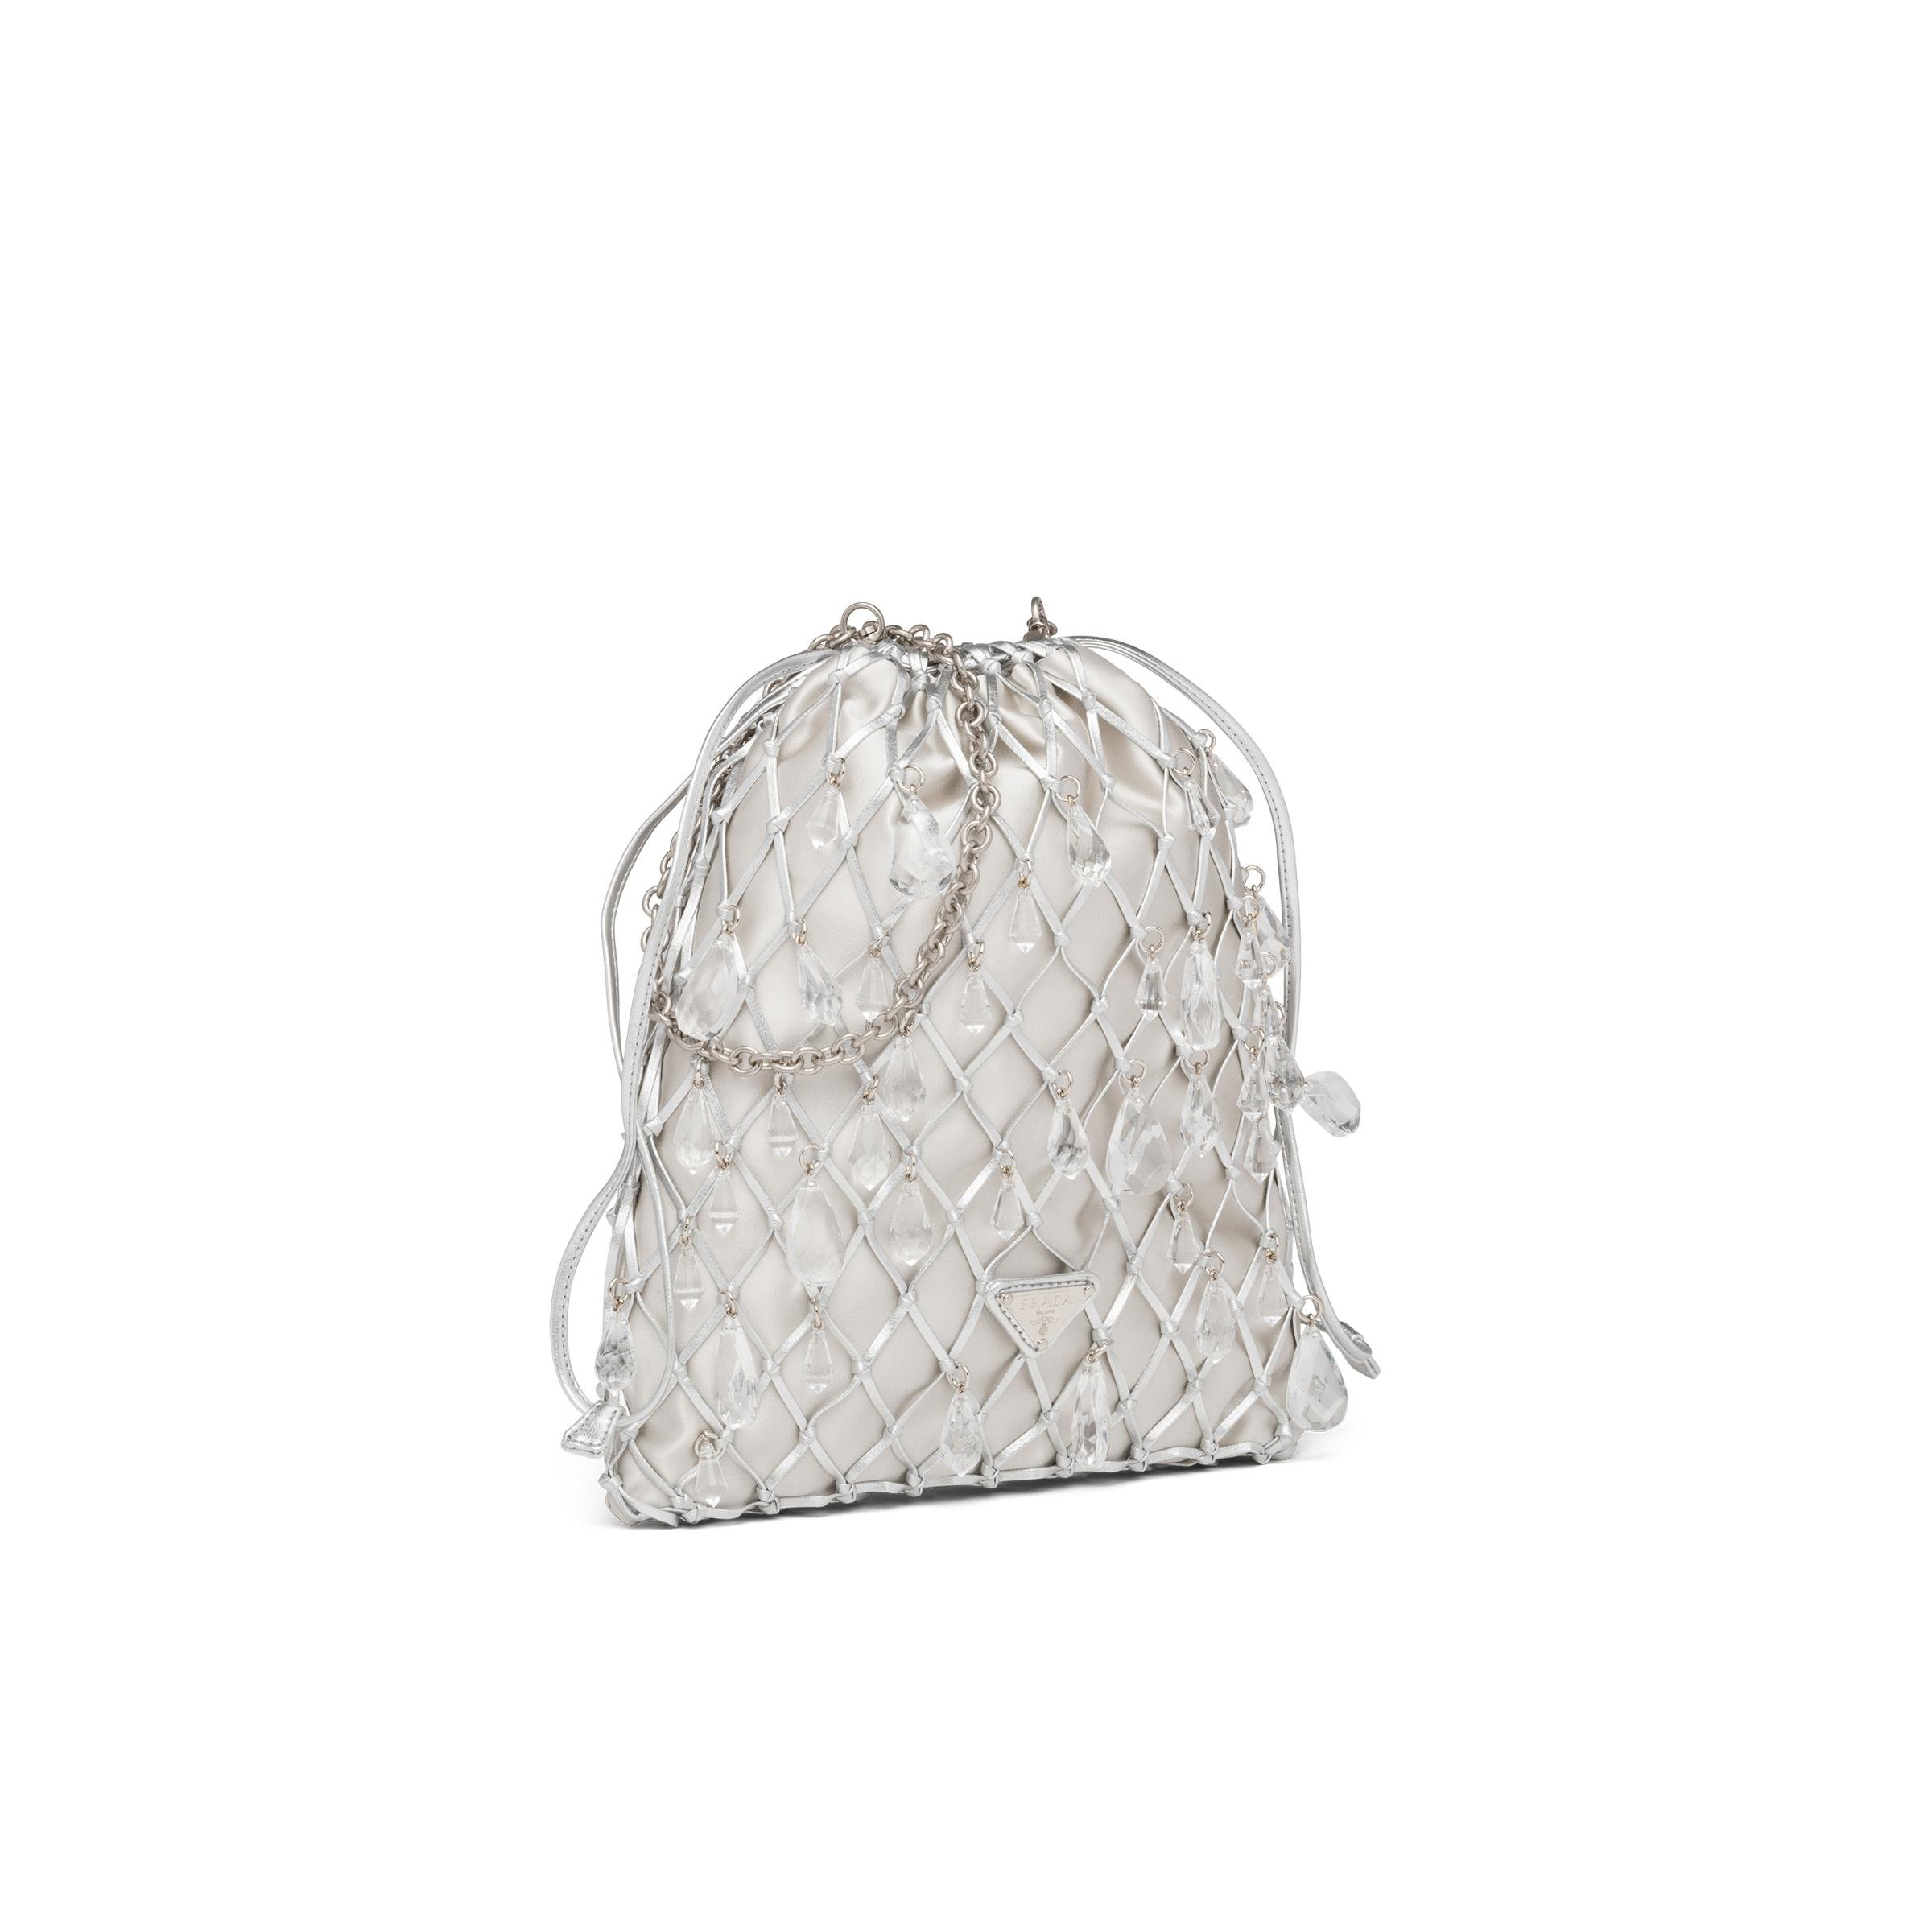 Leather Mesh And Satin Clutch Women Silver 2